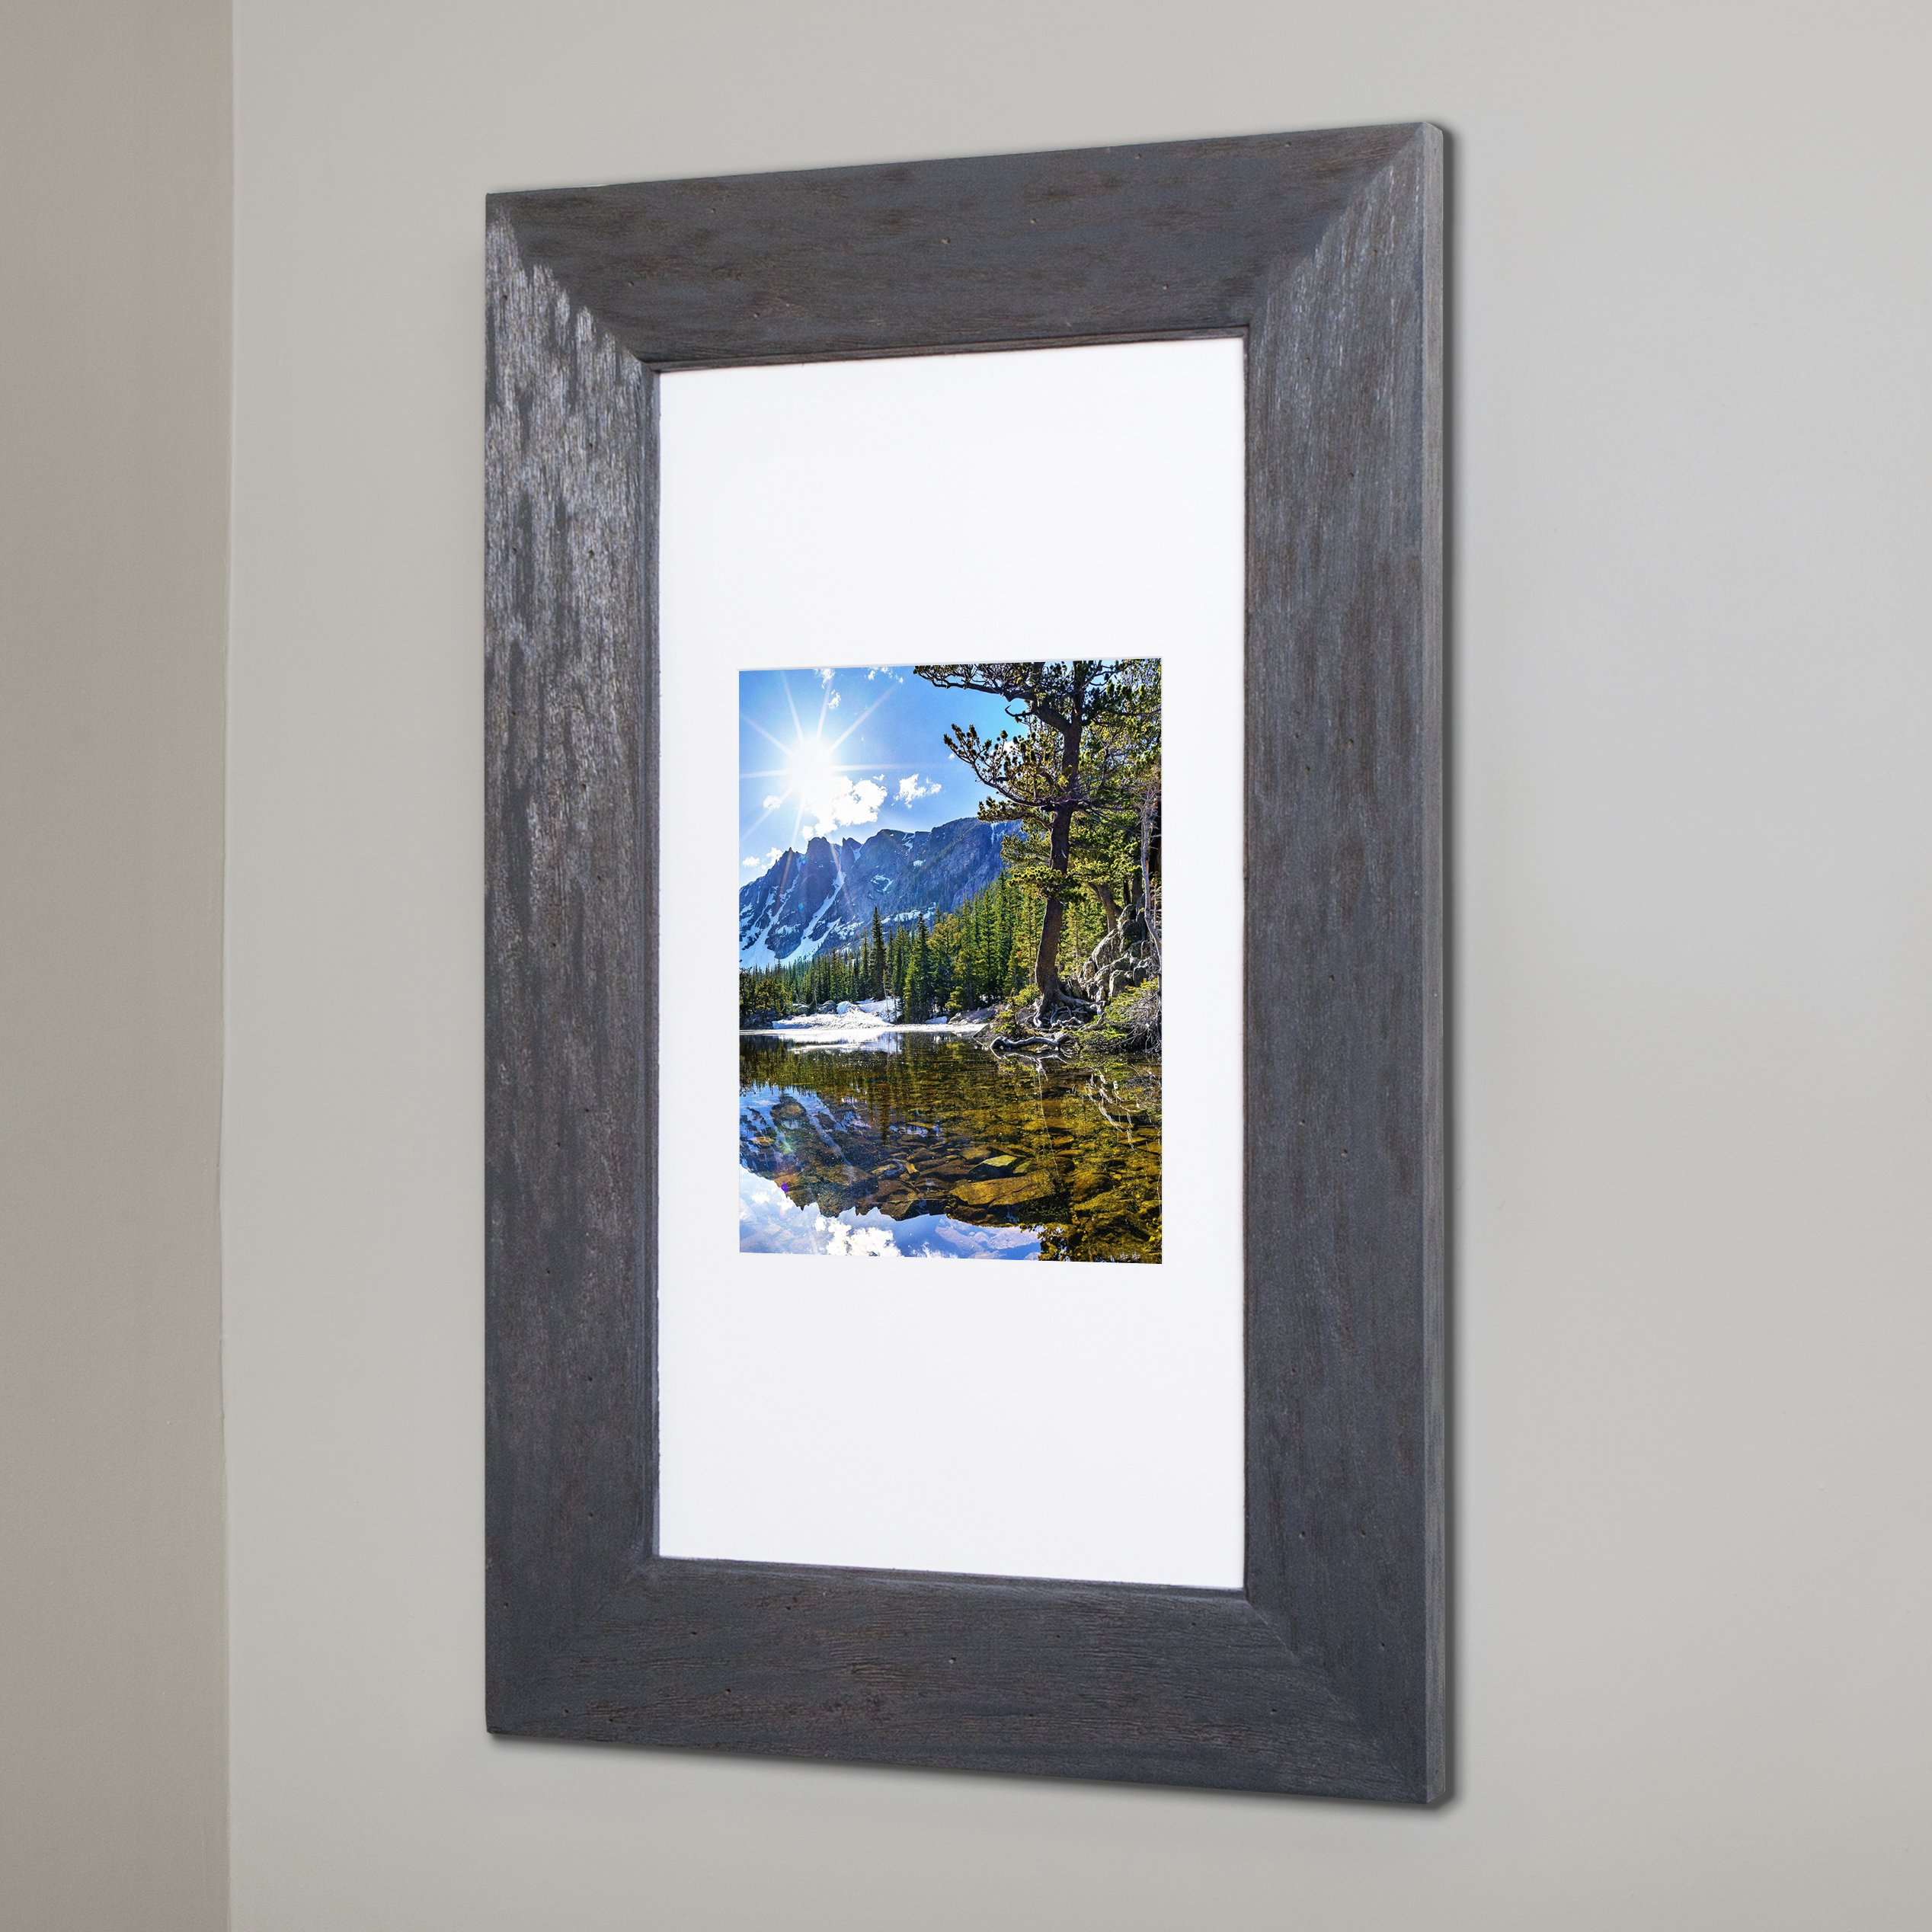 14x24 Rustic Gray Concealed Medicine Cabinet (Extra Large), a Recessed Mirrorless Medicine Cabinet with a Picture Frame Door by The Concealed Cabinet by iinnovators (Image #1)